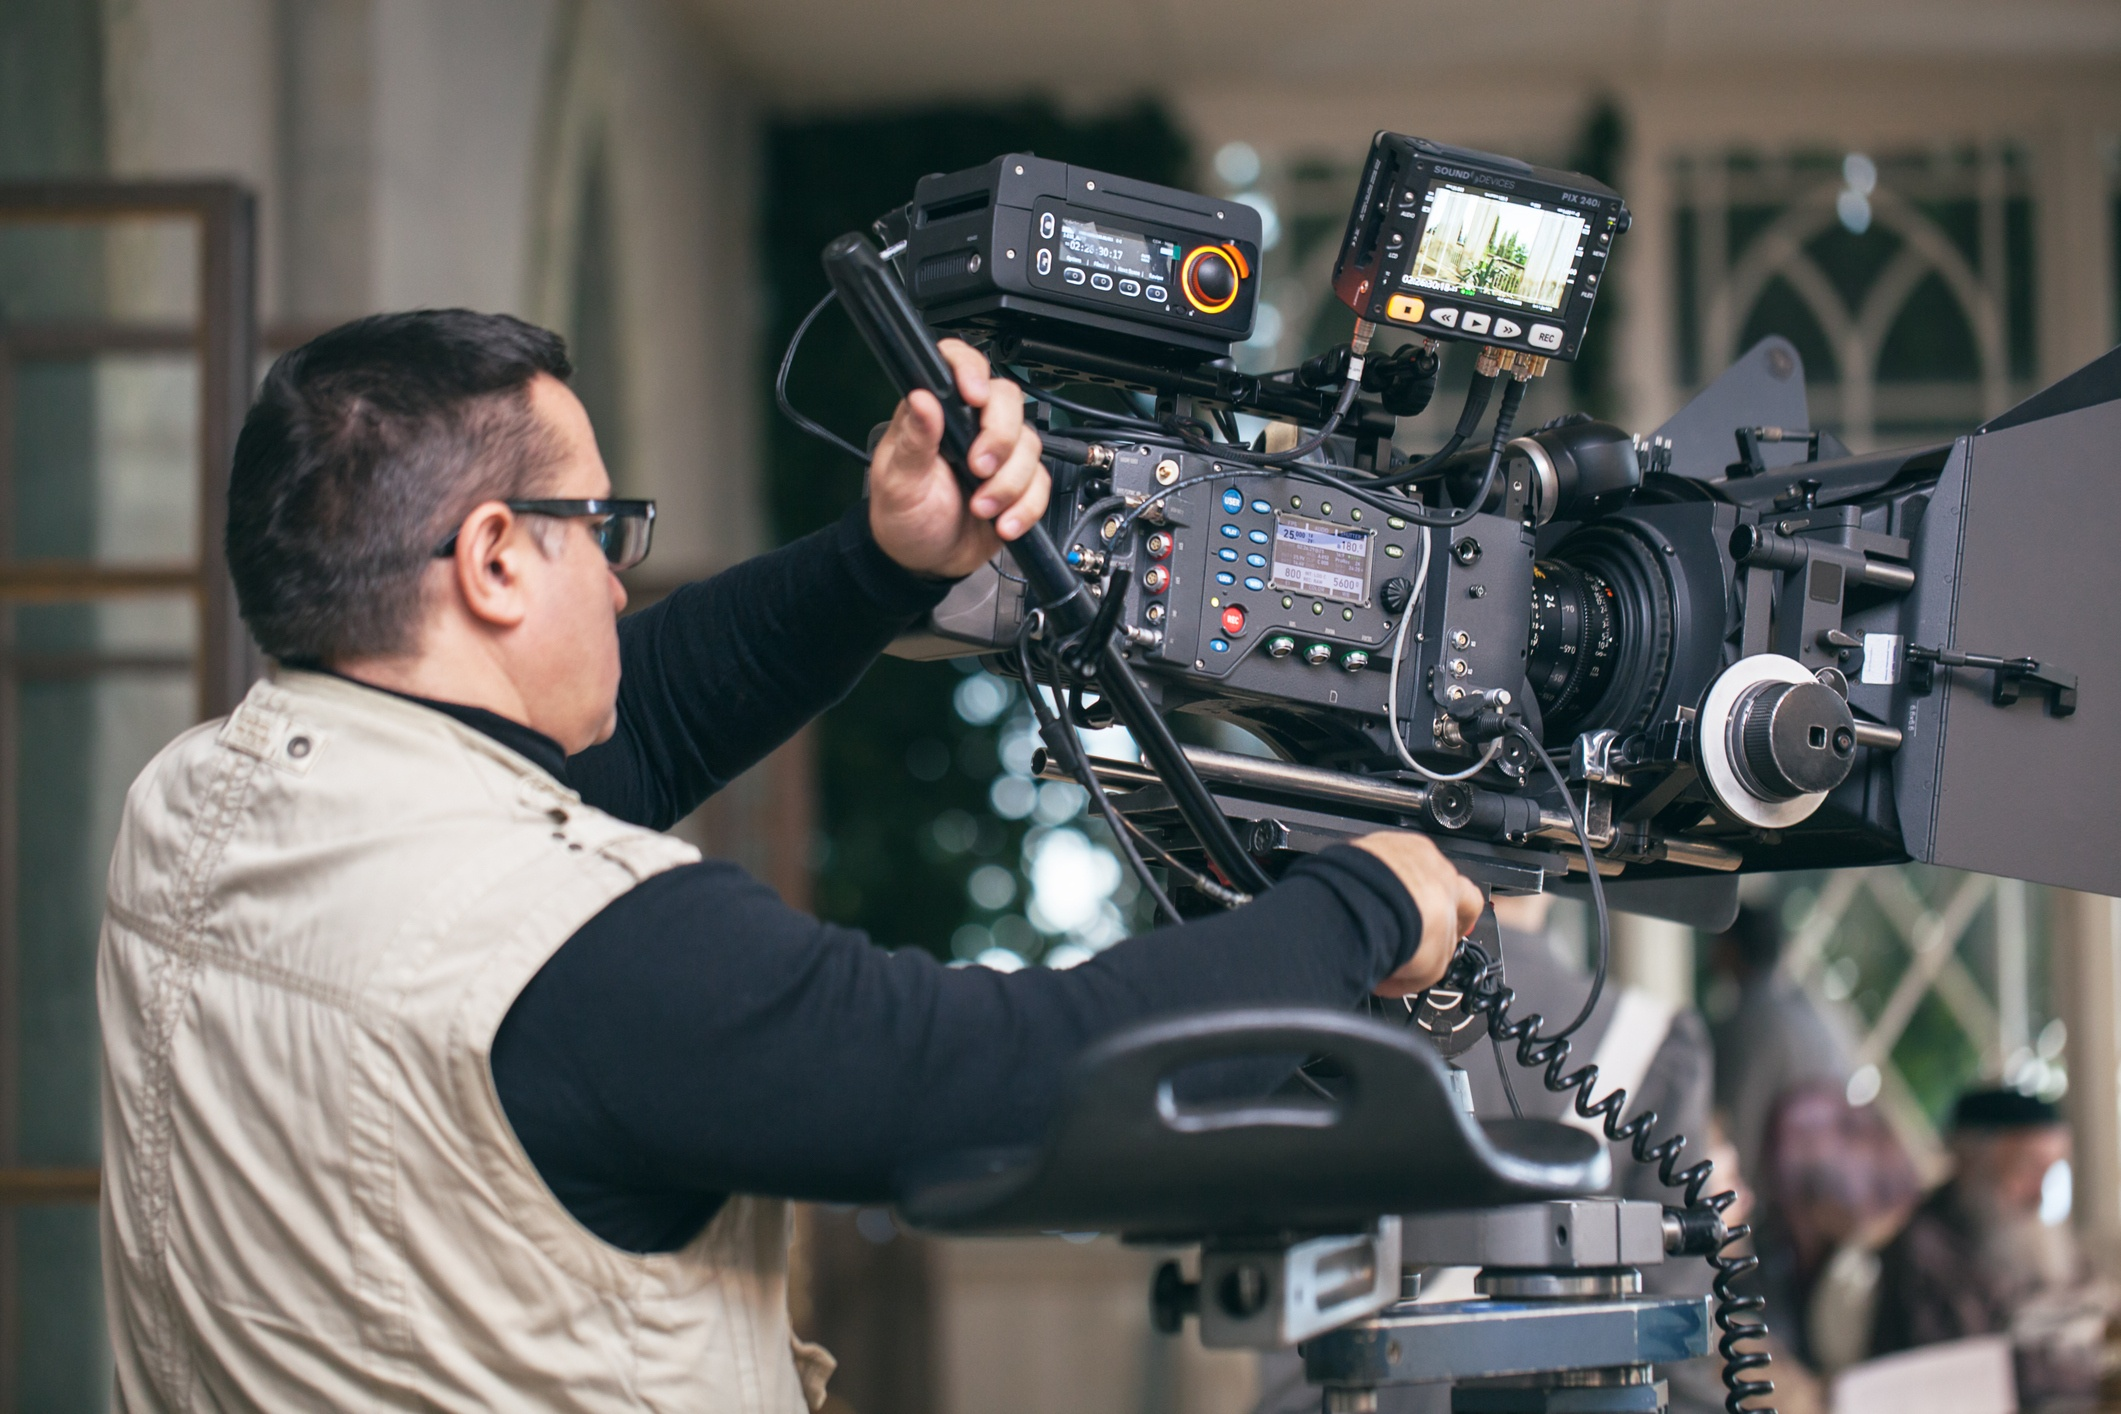 Early Adopters Make Video Marketing Companies Vital